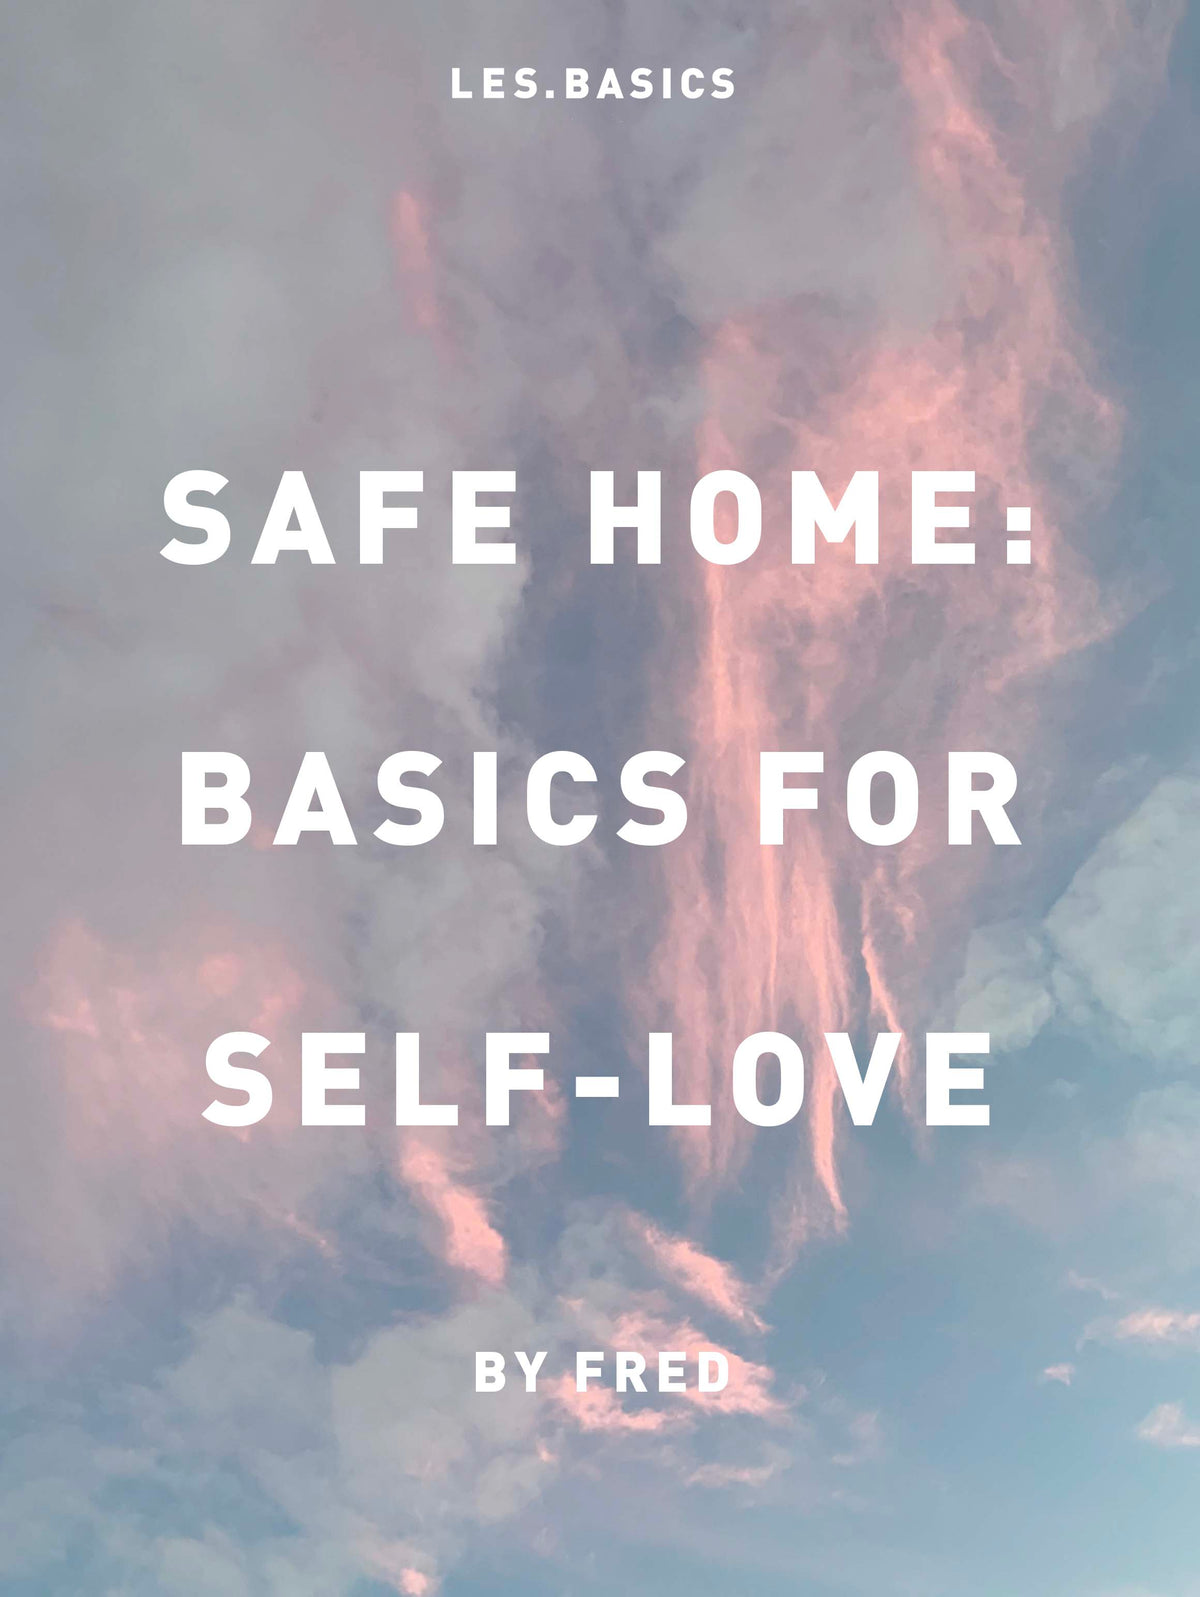 SAFE HOME: BASICS FOR SELF-LOVE